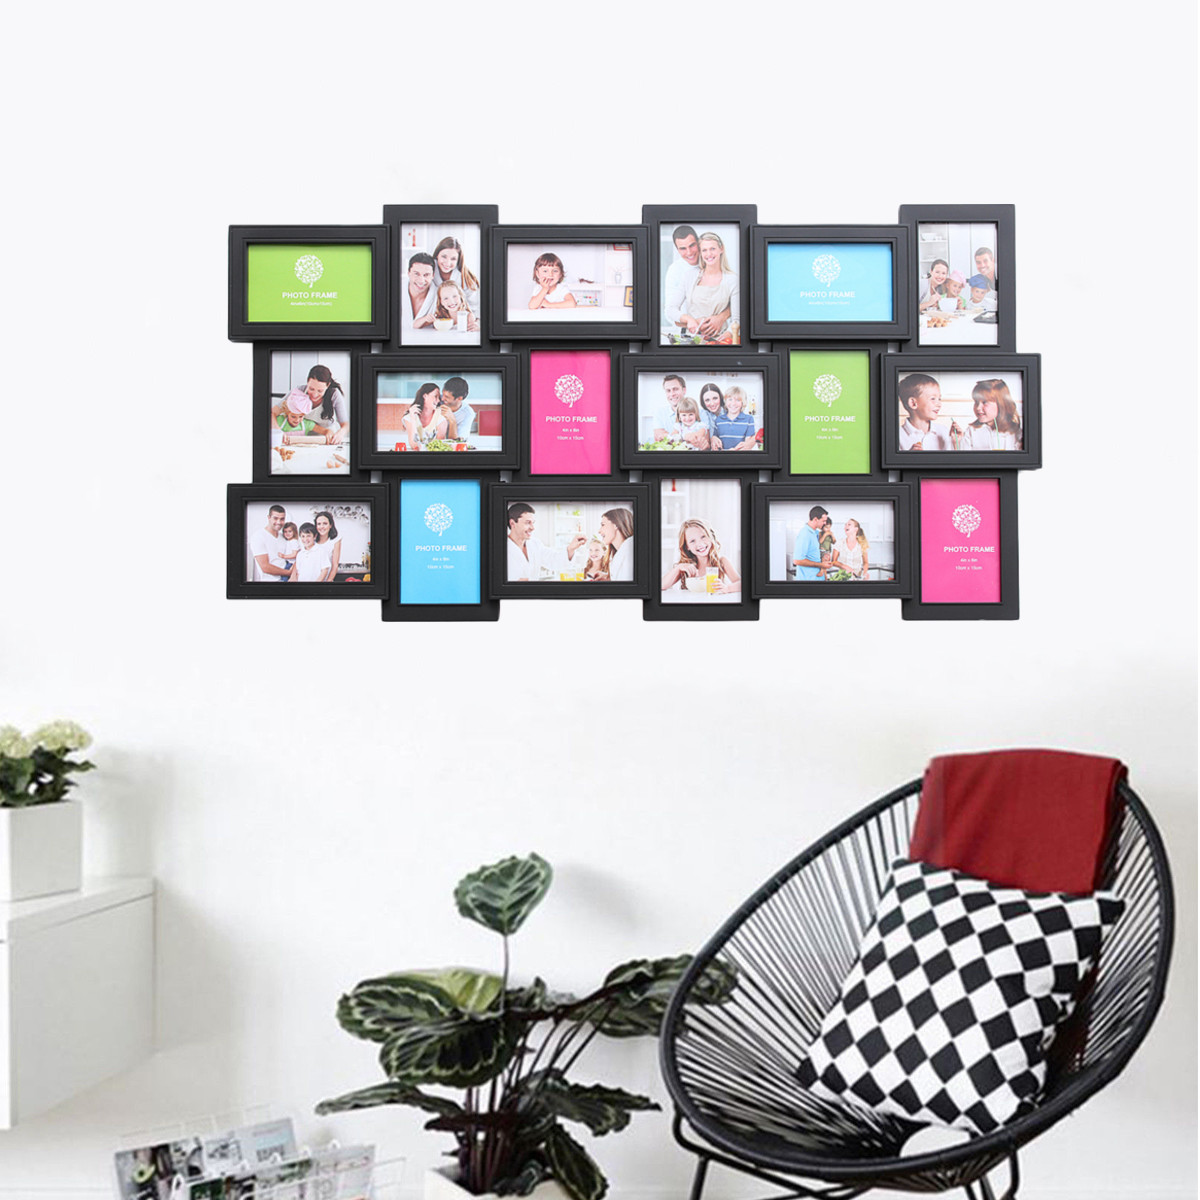 Bilder Collage Wand 18 Fotos Rahmen Wand Dekoration Multi Bilder Rahmen Collage Blende Diy Home Decor Für Wohnzimmer